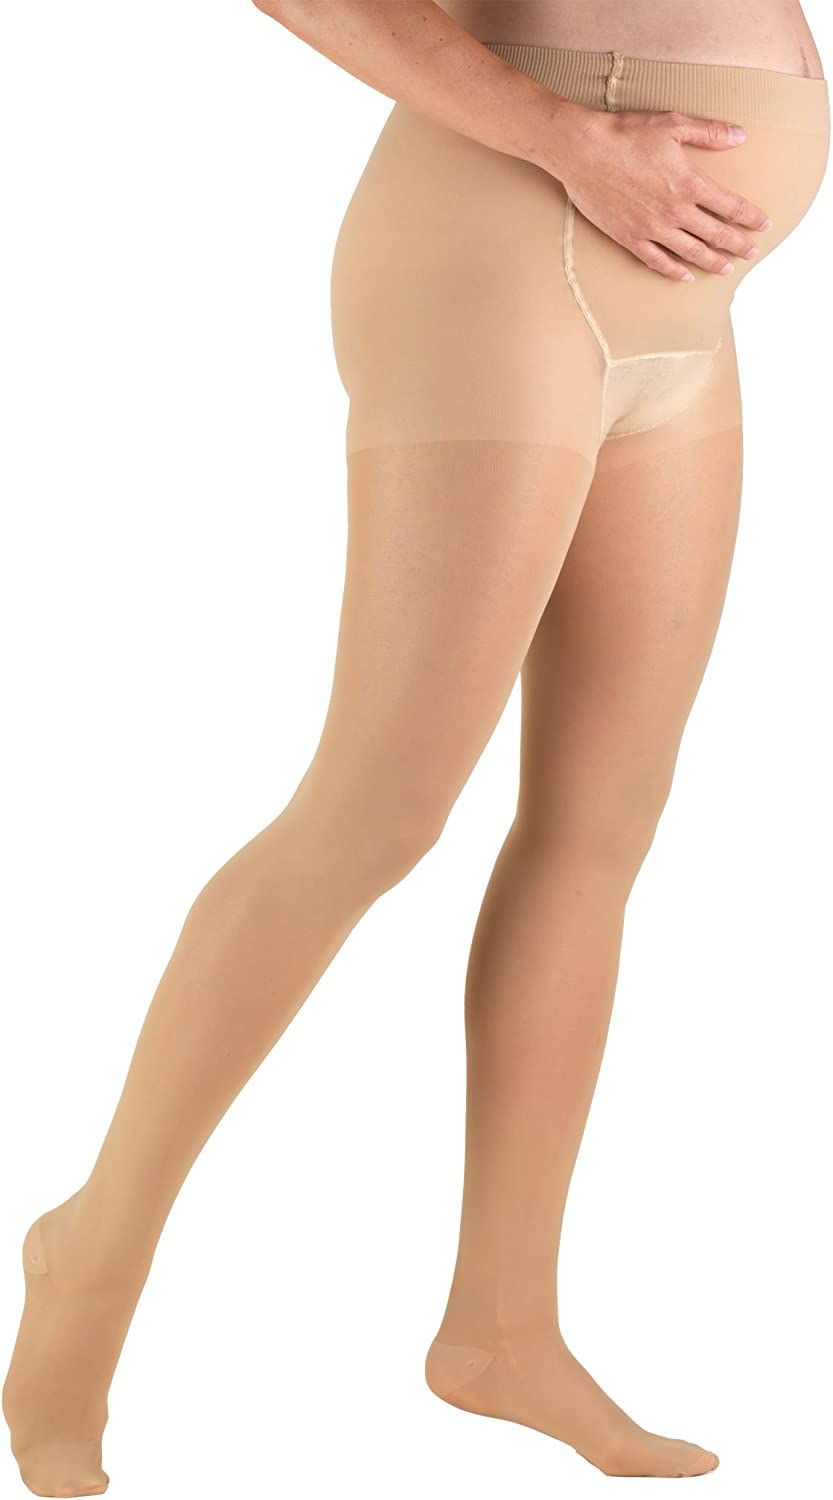 Truform Sheer Spring new work one after another Maternity Pantyhose mmHg 20-30 2021 new Tummy Compression